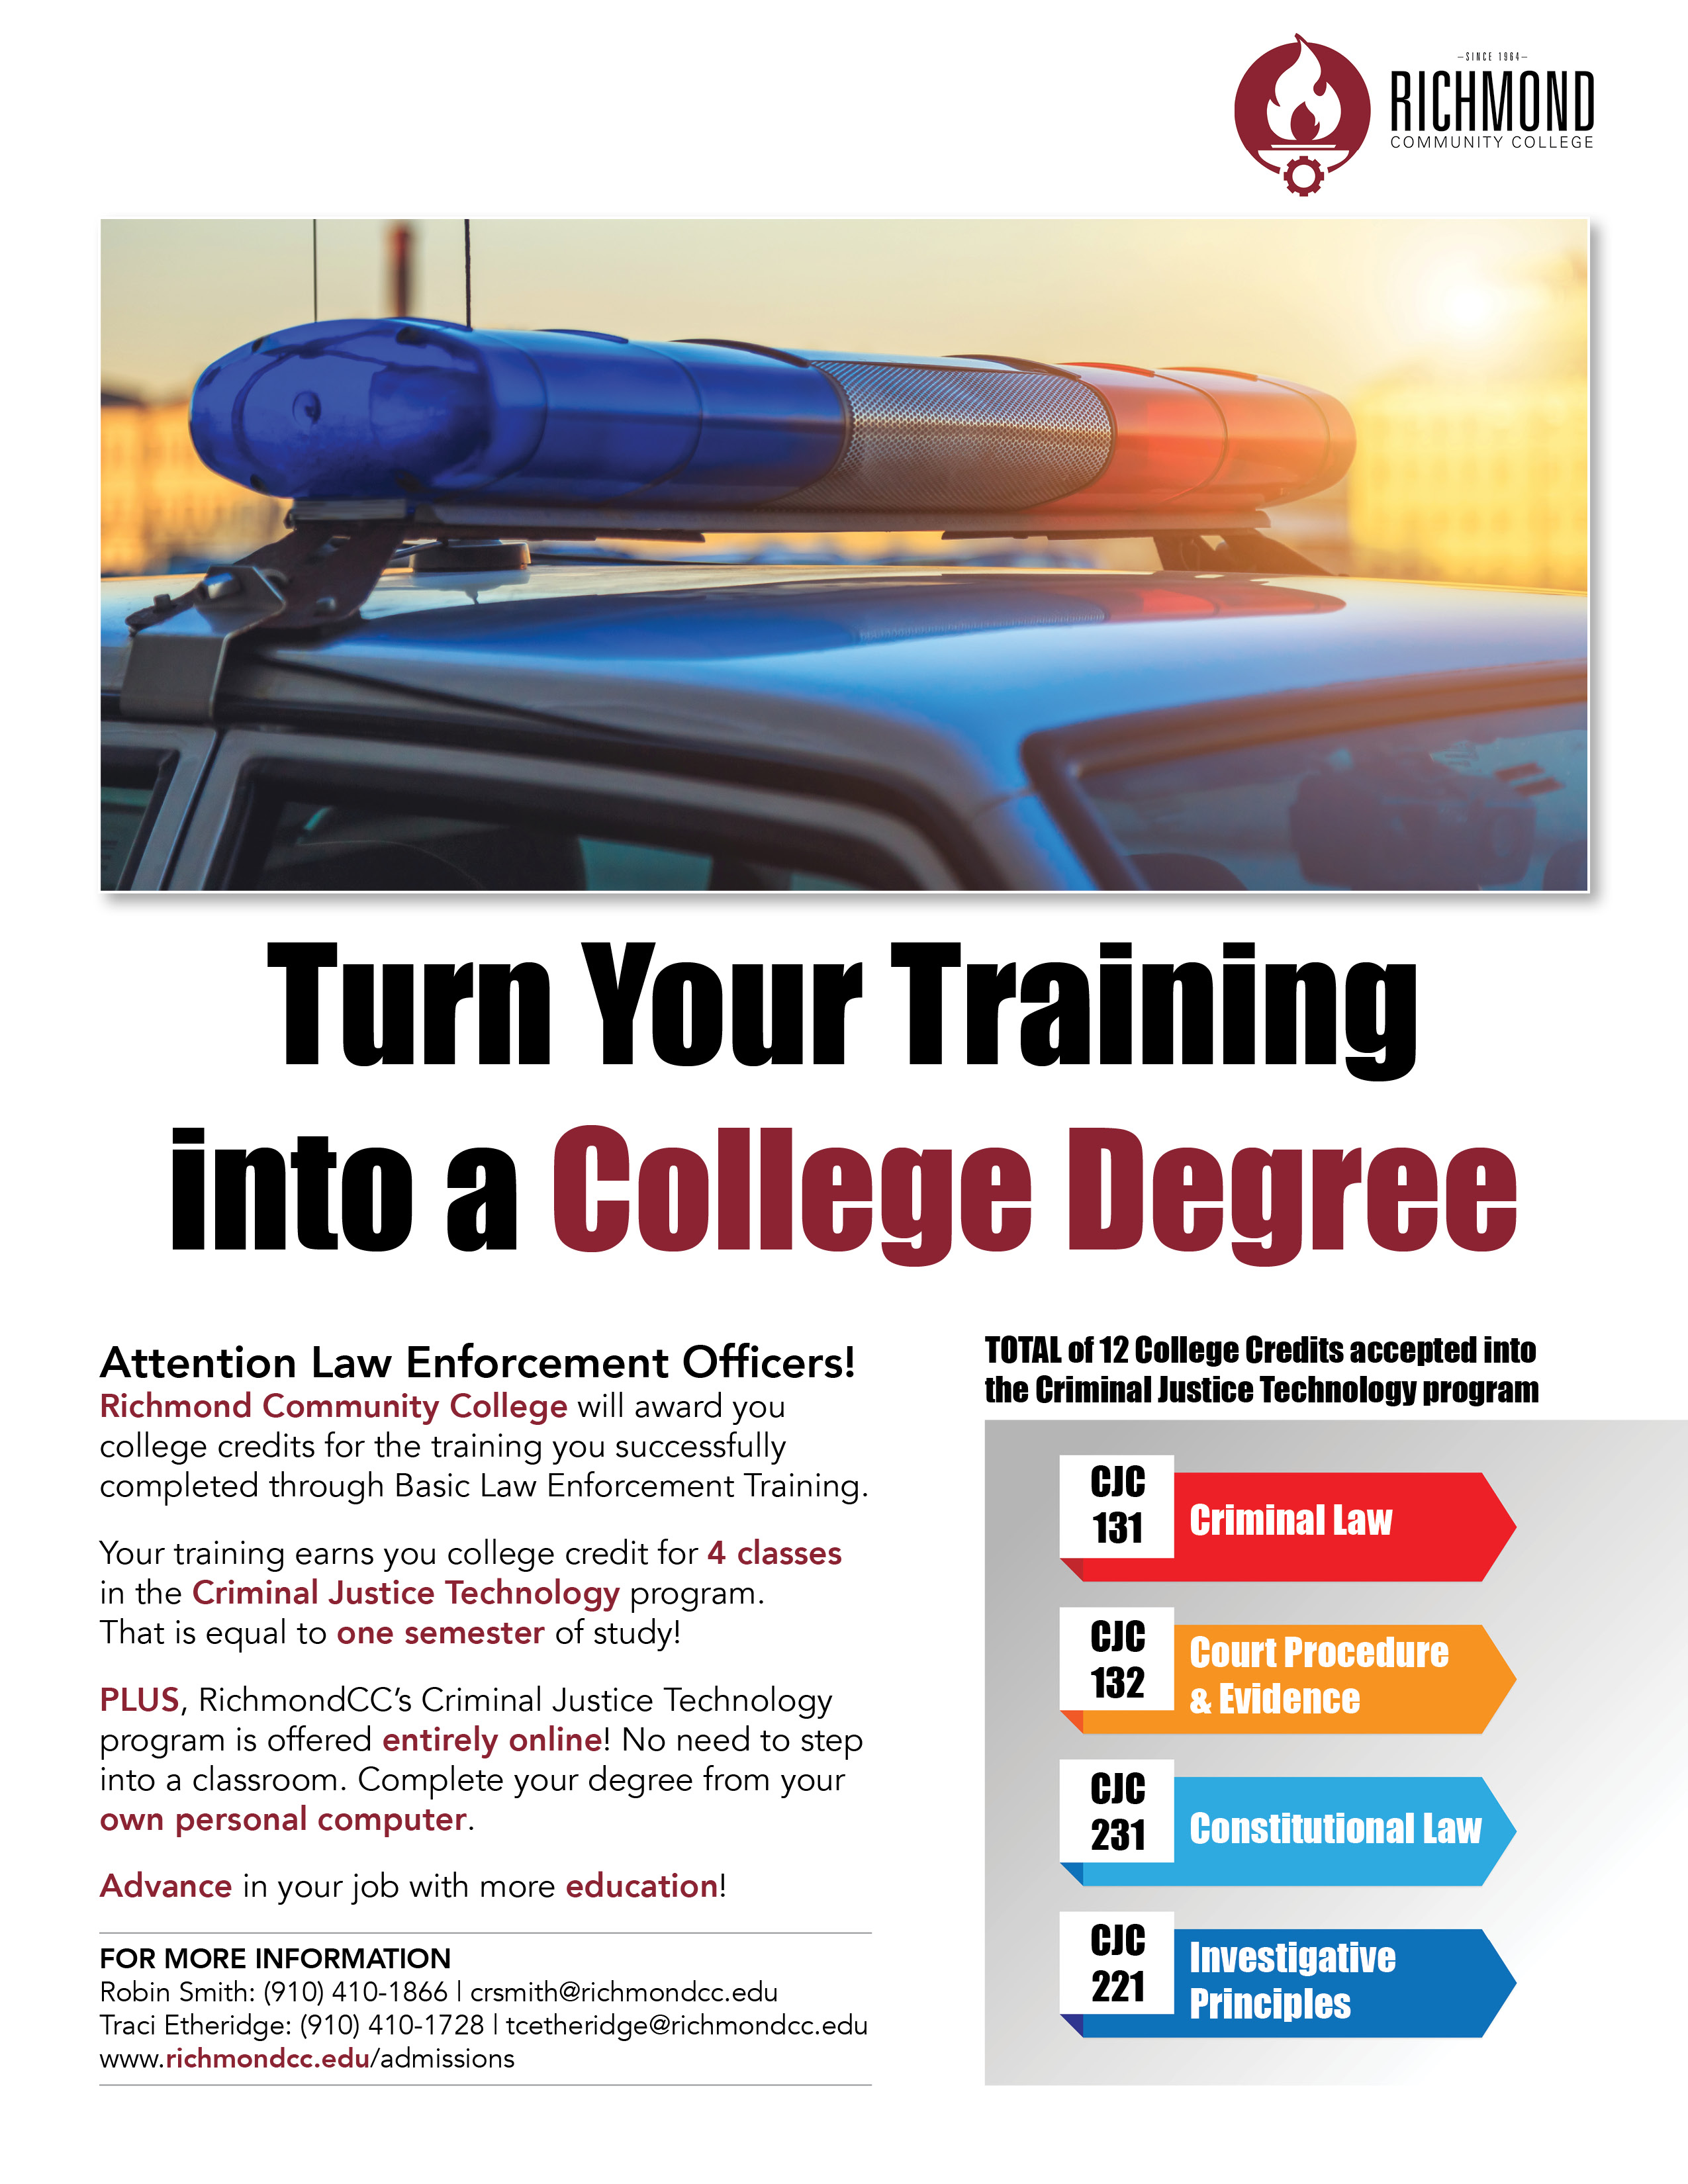 Turn your training into a college degree